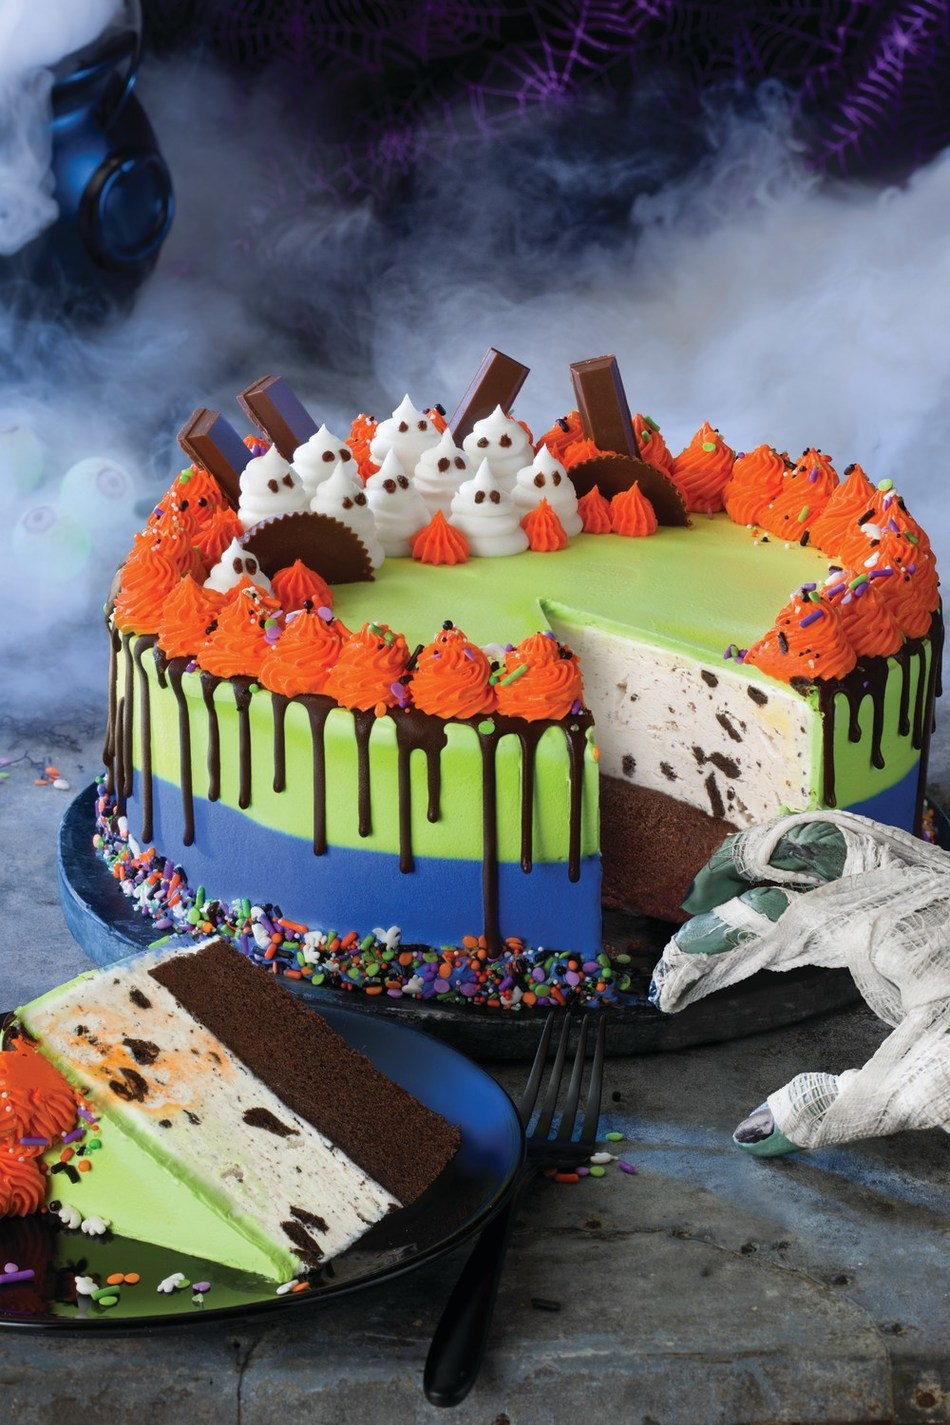 Baskin-Robbins' Ghost Cake is a two-colored stripe cake topped with buttercream ghosts, pieces of KIT-KAT® and Reese's® Peanut Butter Cups, chocolate drips and a Halloween sprinkle mix. For more information, visit www.baskinrobbins.com.